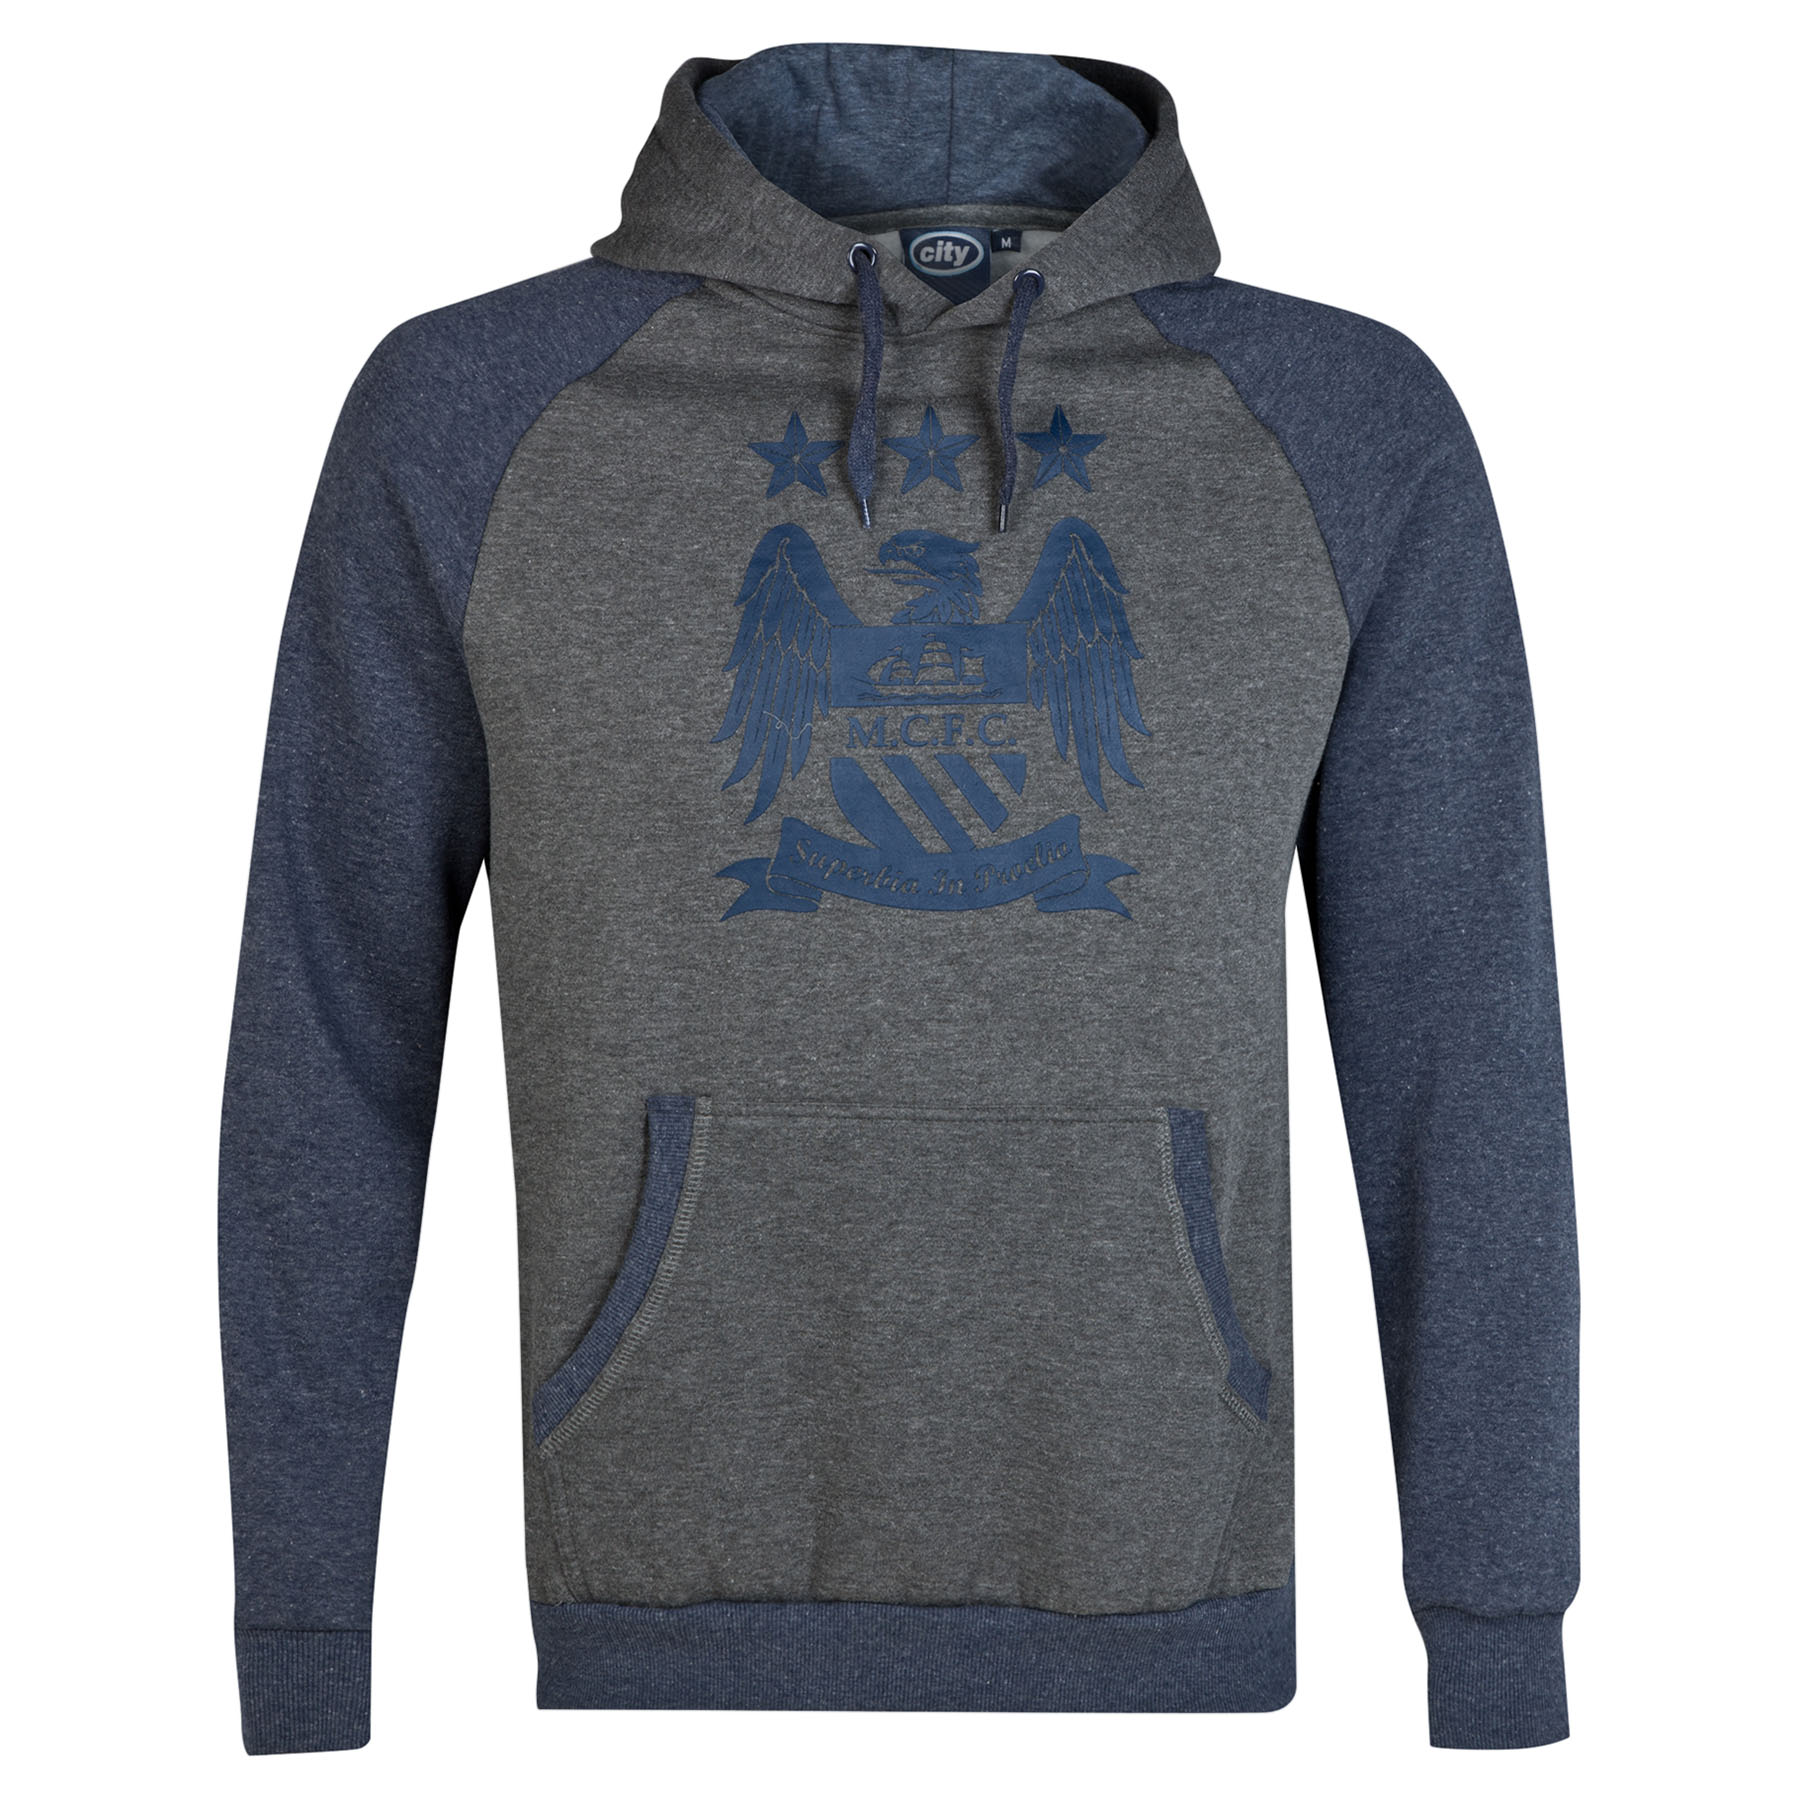 Manchester City Classic Print Hoodie - Heather Navy - Mens